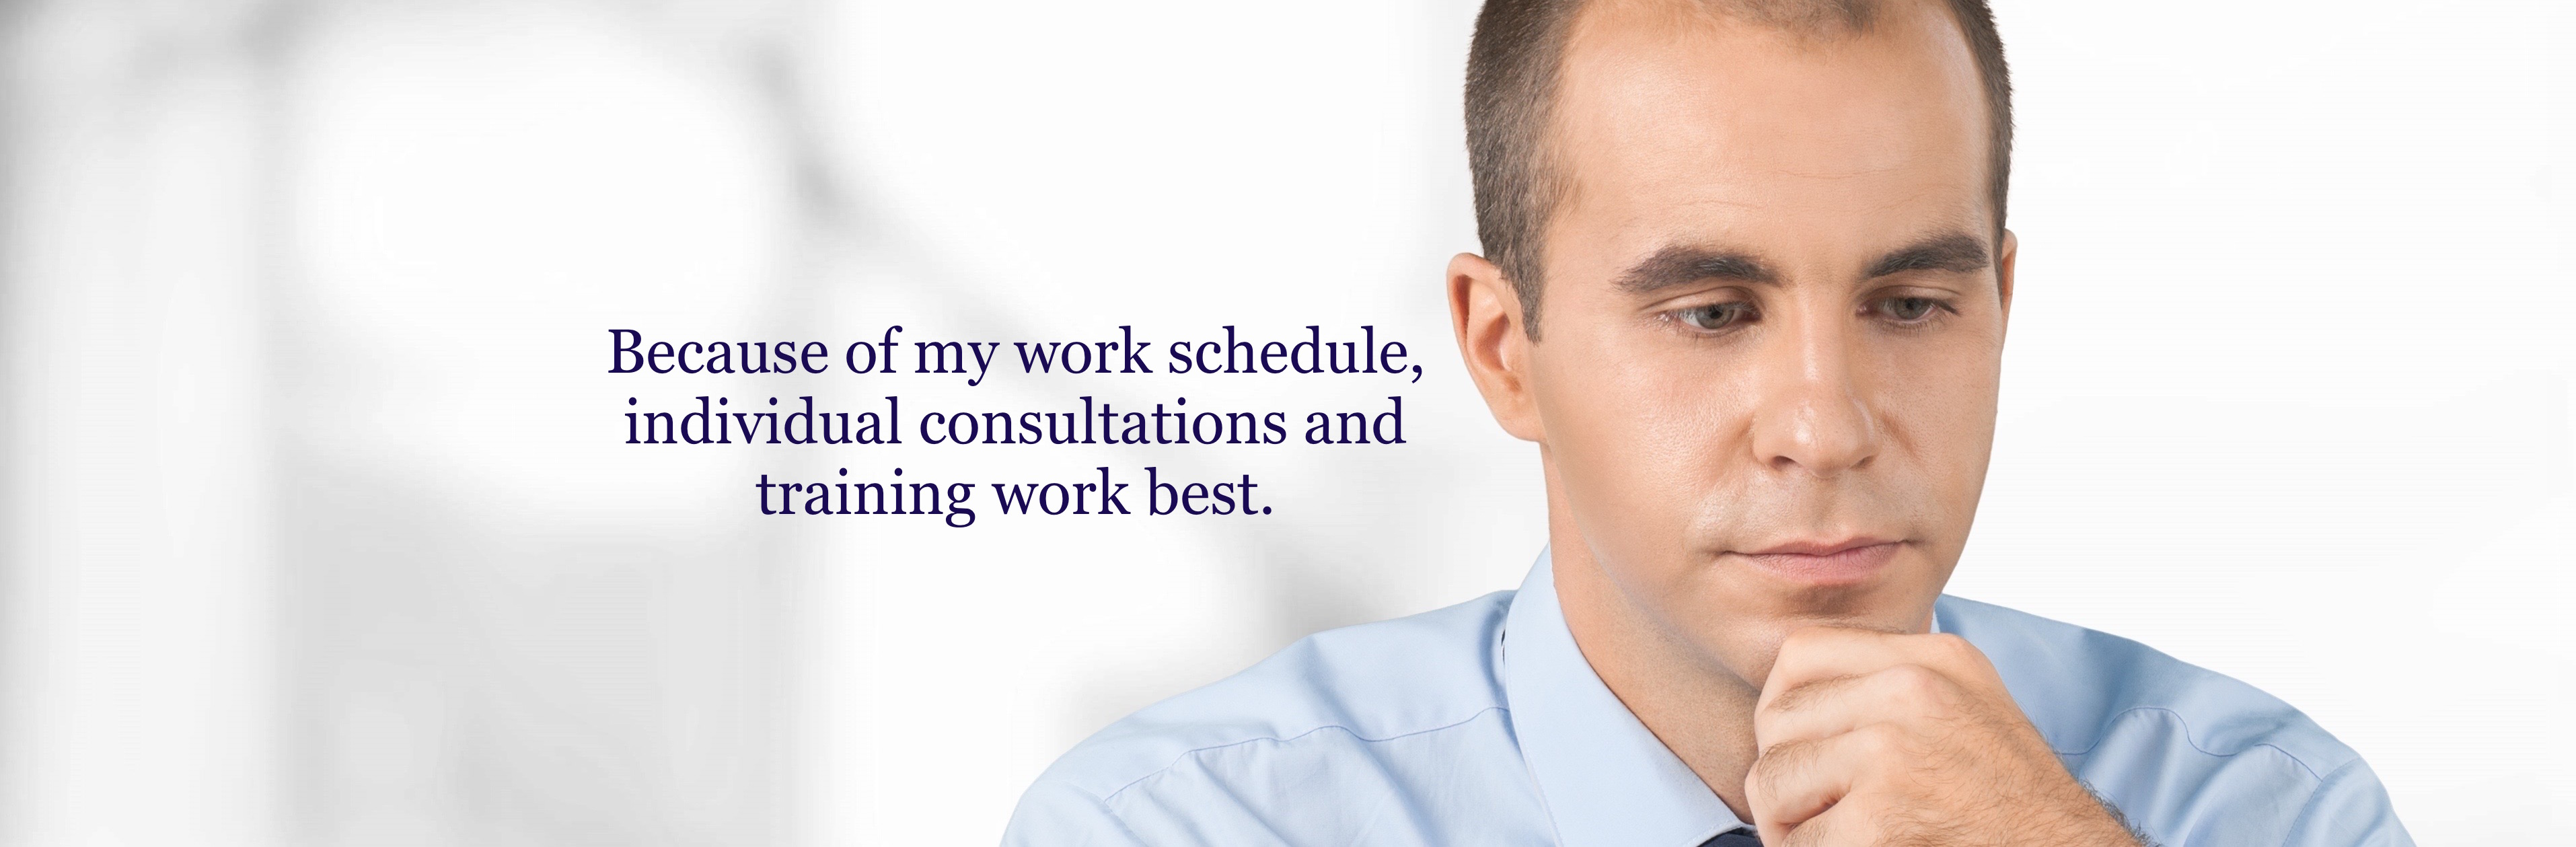 workschedule